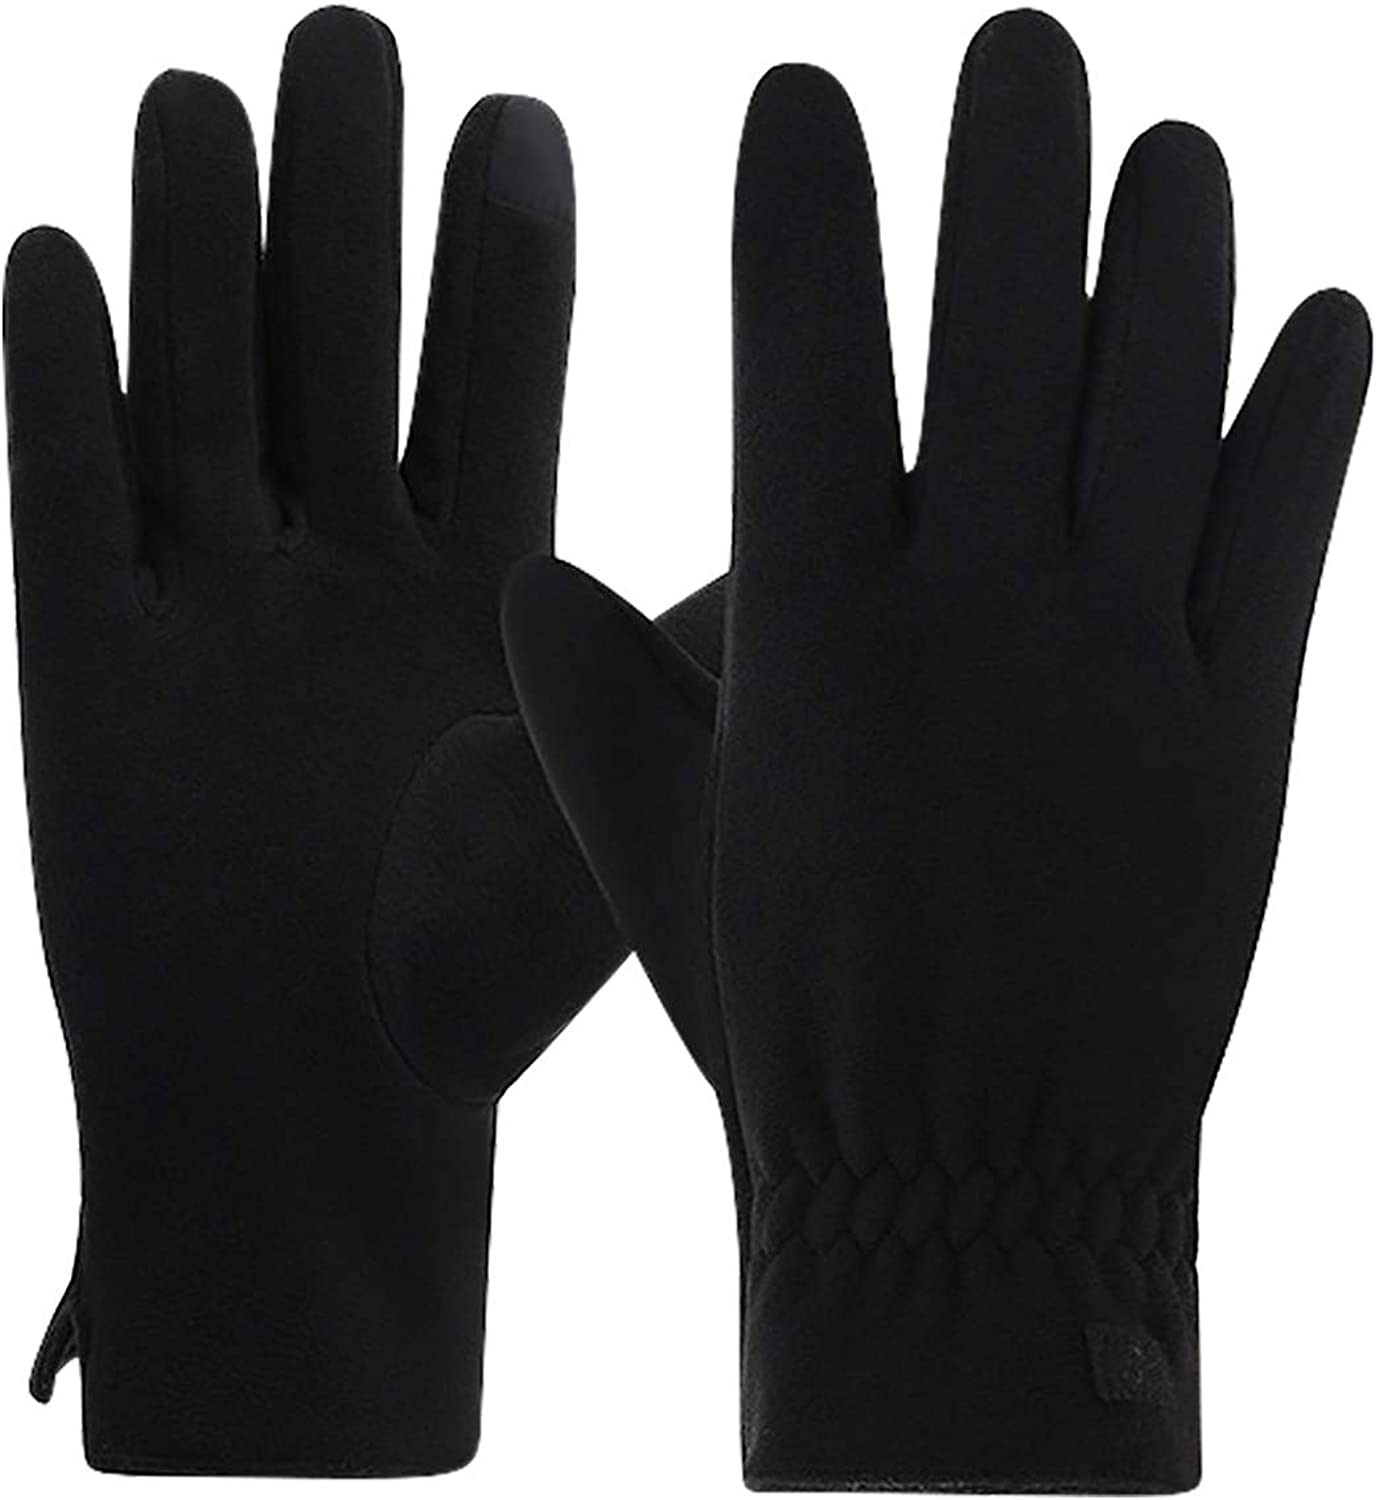 Fleece Warm Gloves In Winter, Wind And Cold Sports Warm Mittens, Suitable For Running, Driving, Cycling